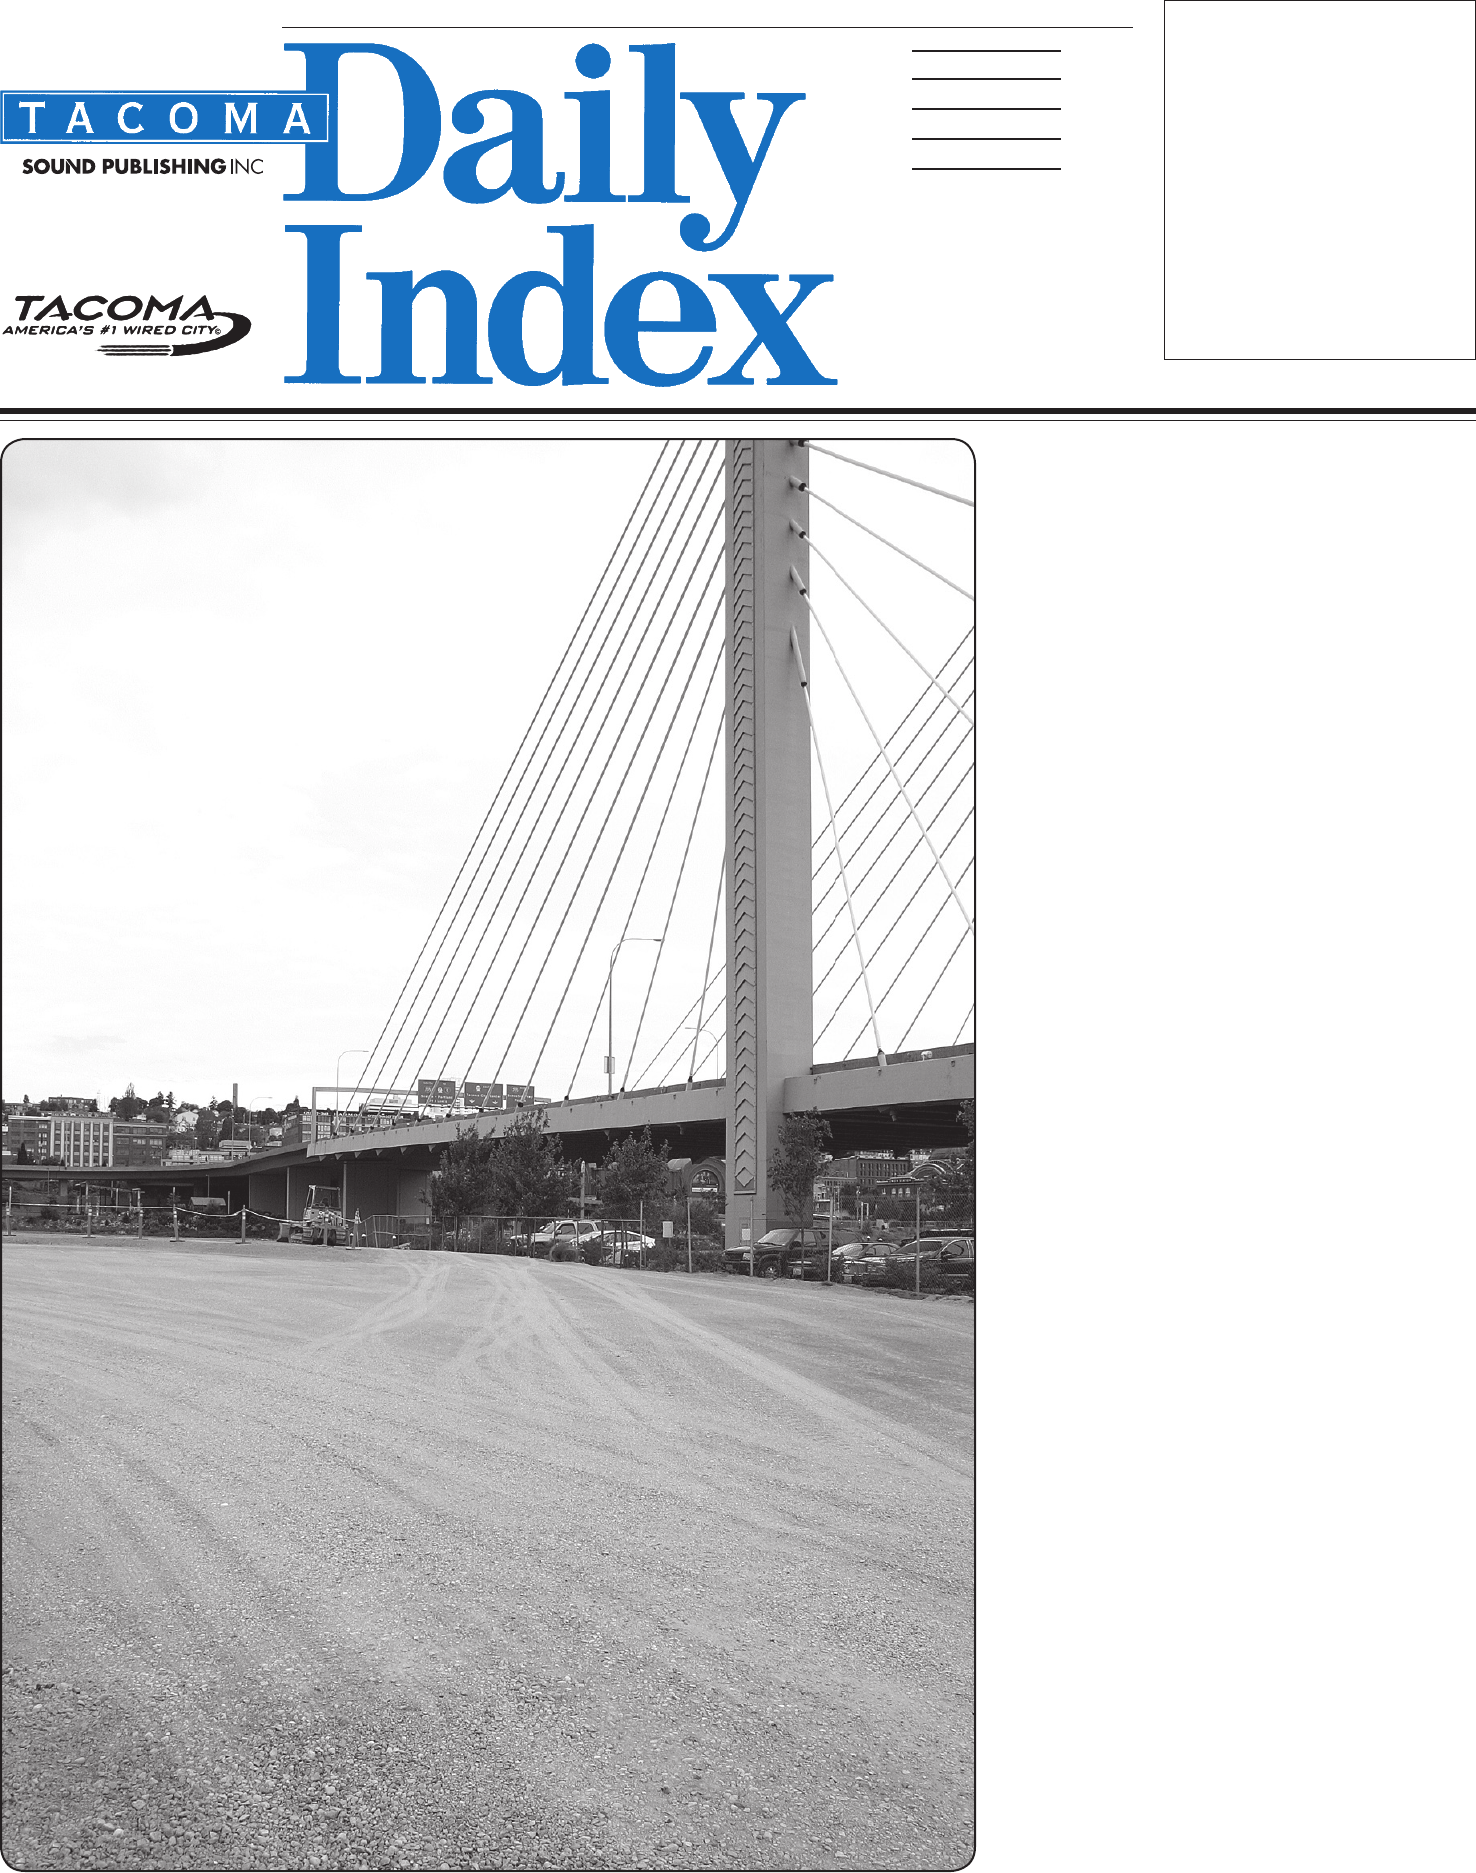 Andrea Garciaxxx tacoma daily index, december 28, 2012